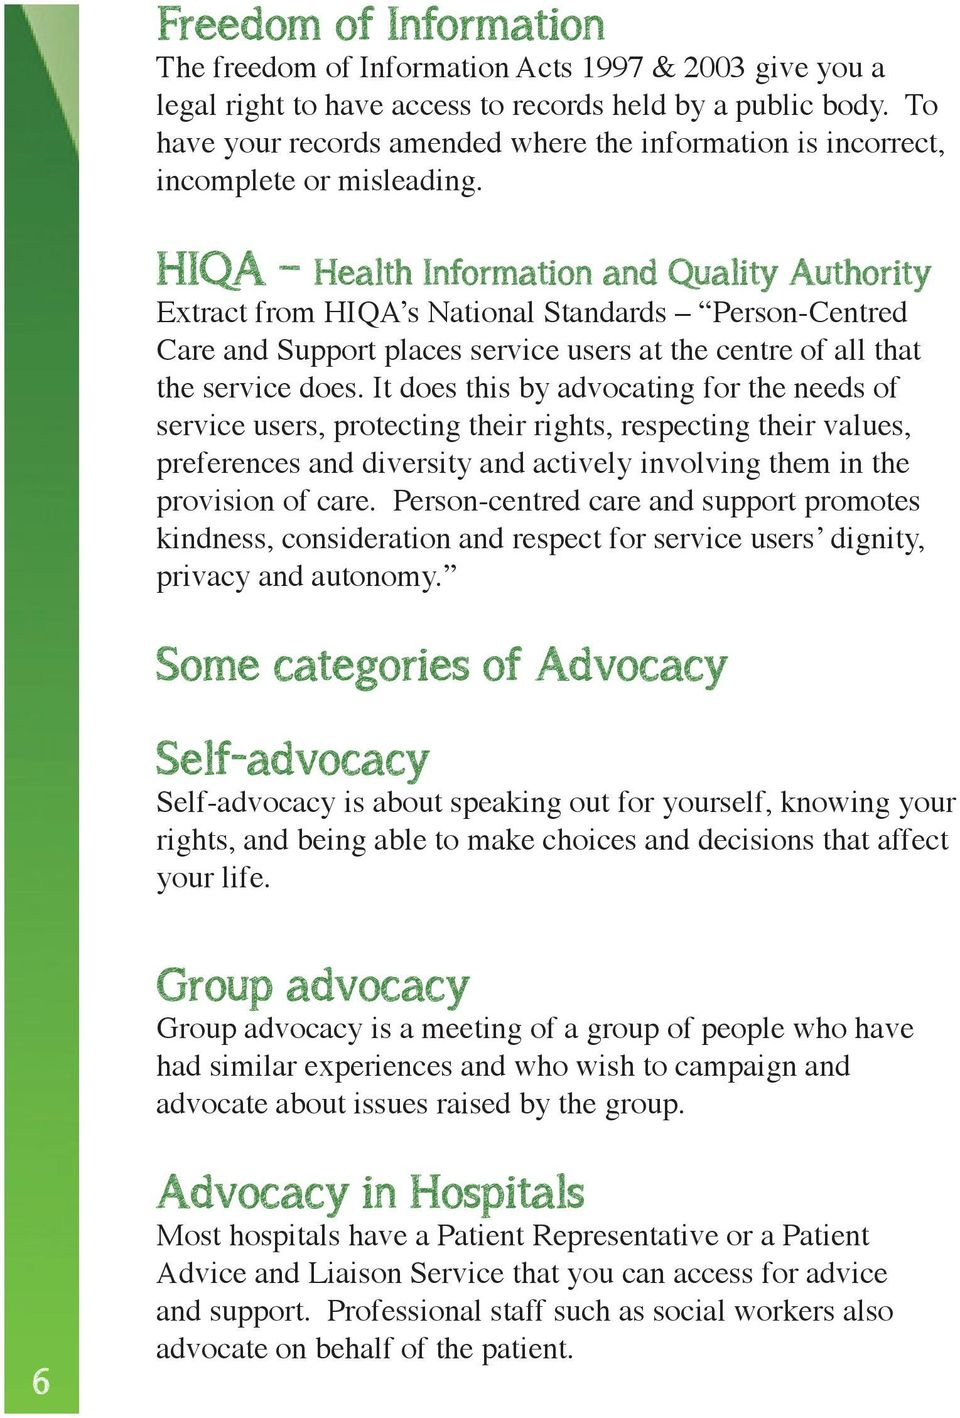 HIQA Health Information and Quality Authority Extract from HIQA s National Standards Person-Centred Care and Support places service users at the centre of all that the service does.